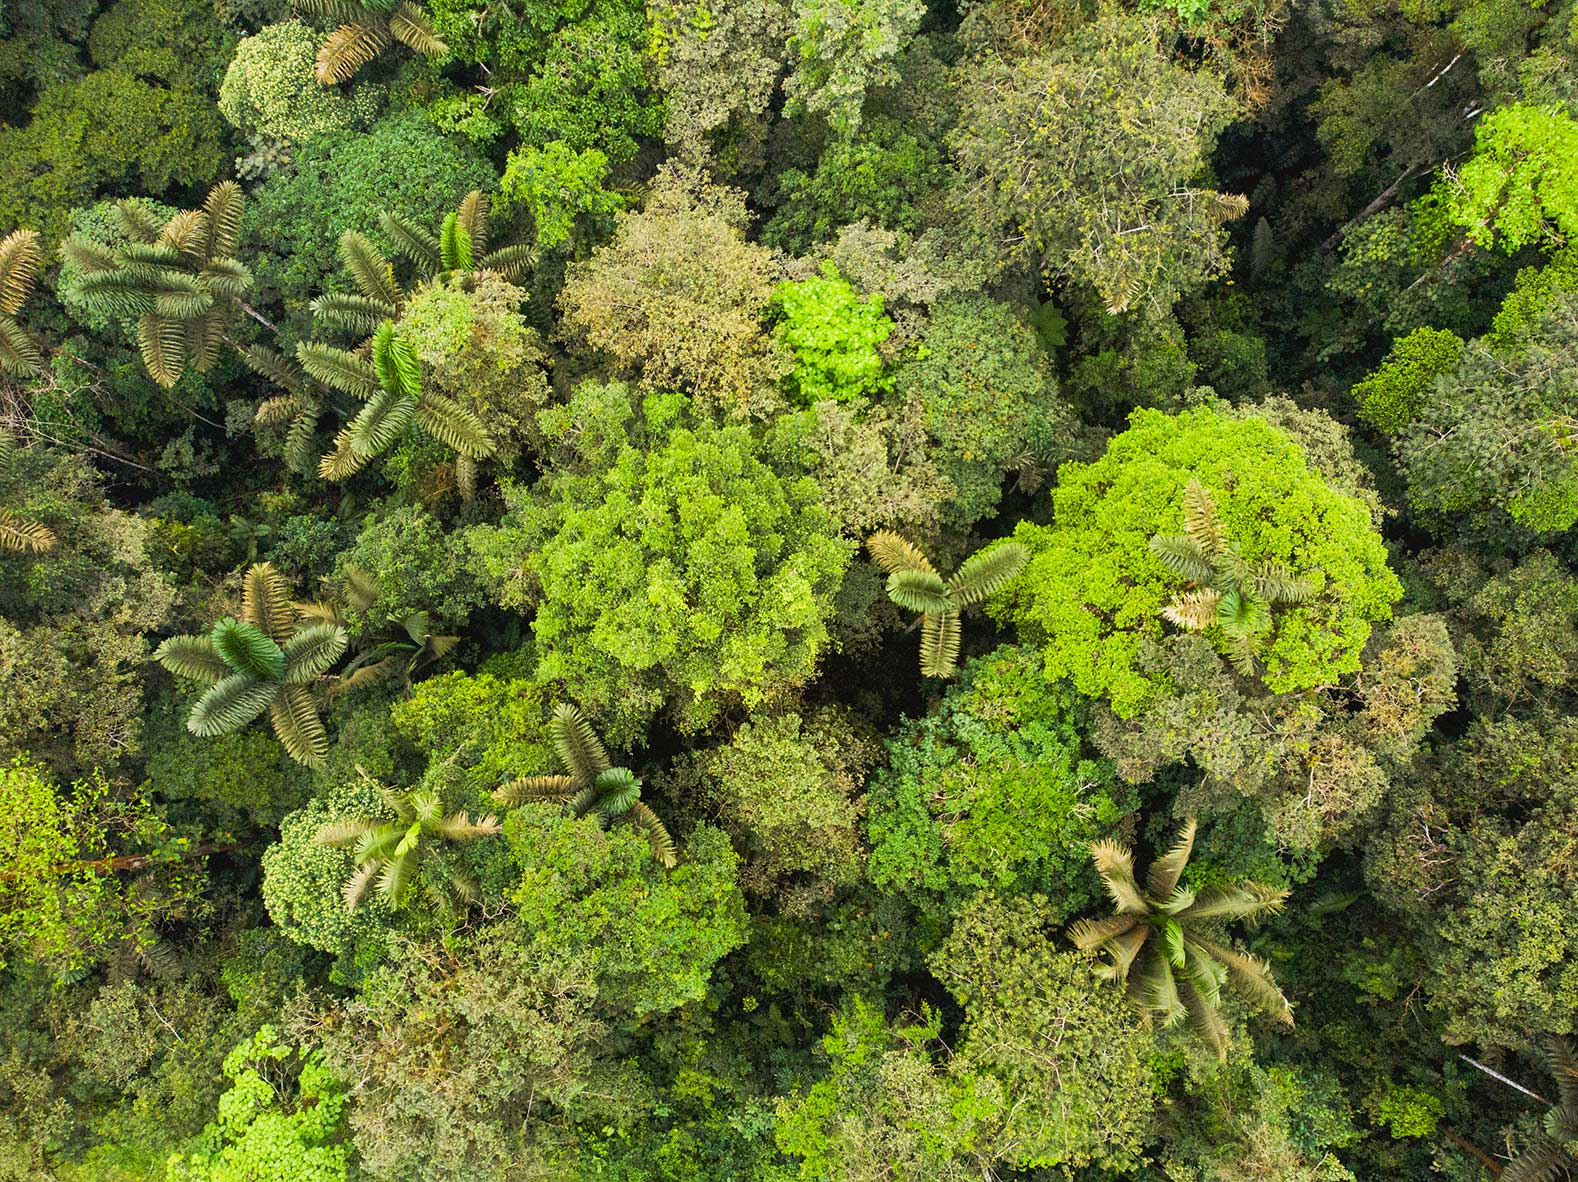 An overhead view of the diverse tree canopy